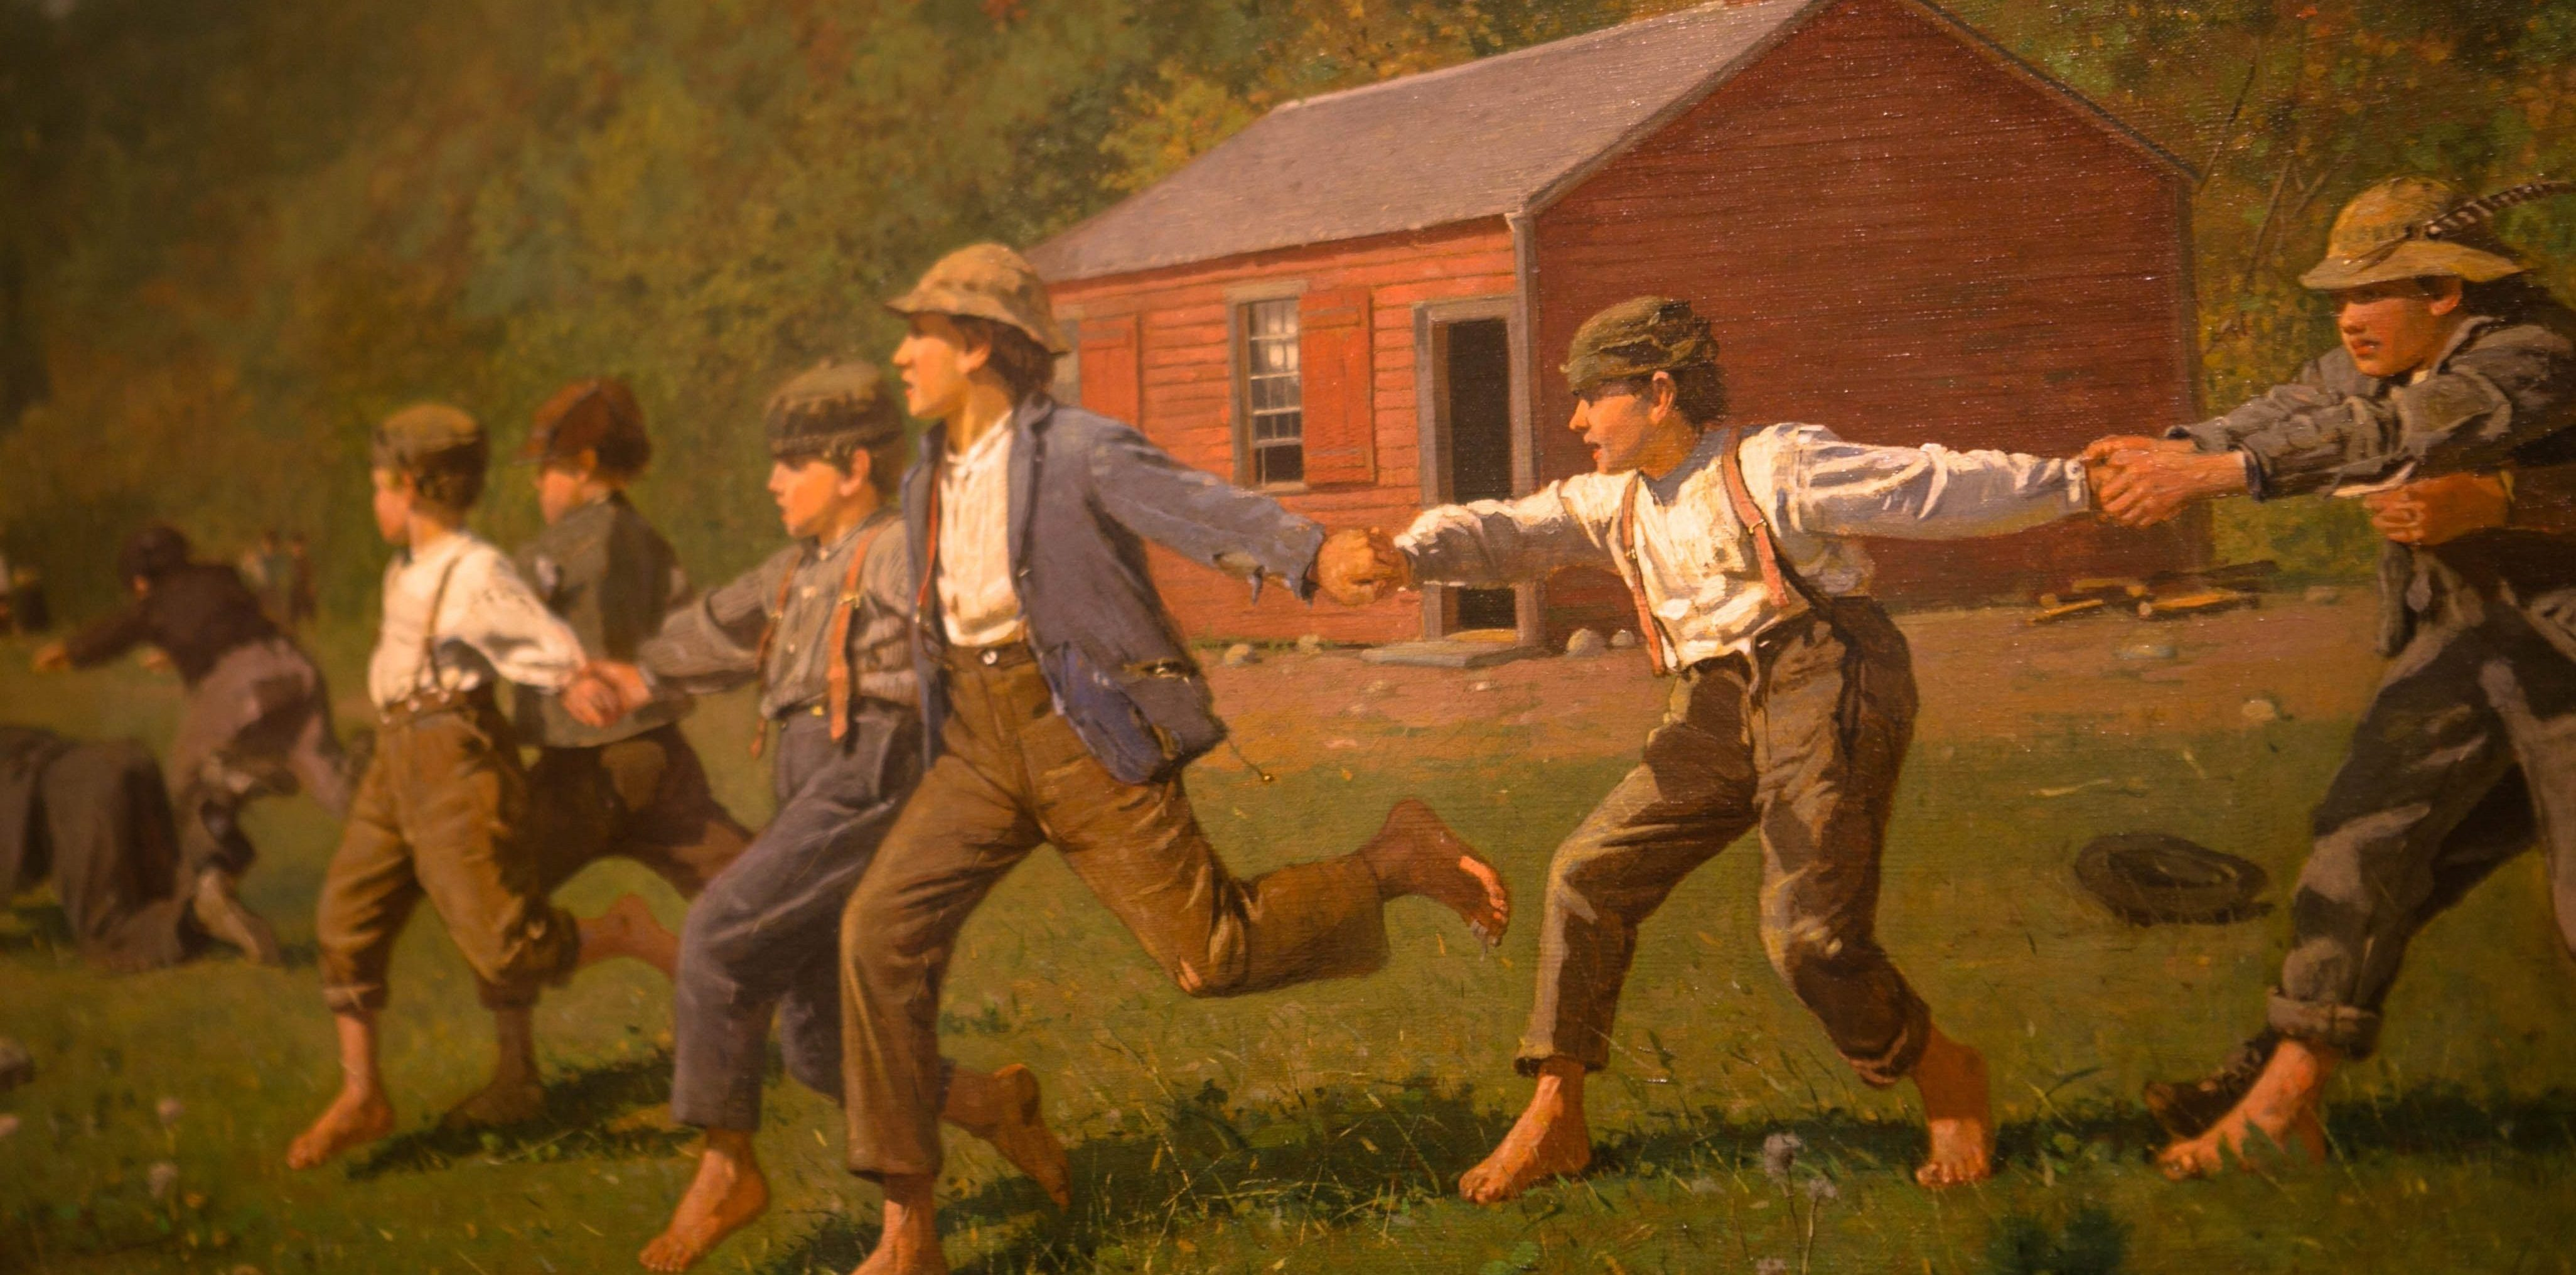 boys playing in the field